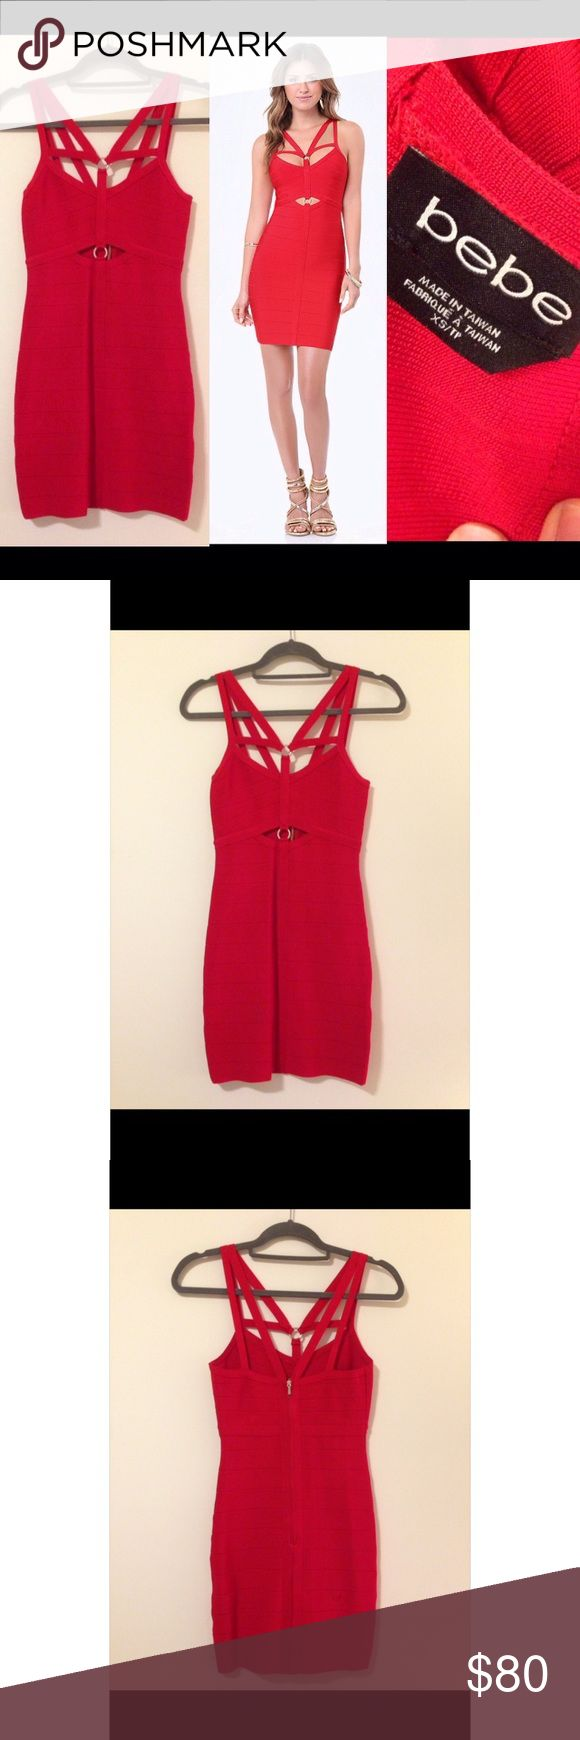 BEBE Red Bandage Dress Mini Size 4 Worn once! NEW! Worn once.  In perfect condition. Very sexy!  Size Extra Small. I'm a size 5/6 usually and it stretched to hug every curve! bebe Dresses Mini